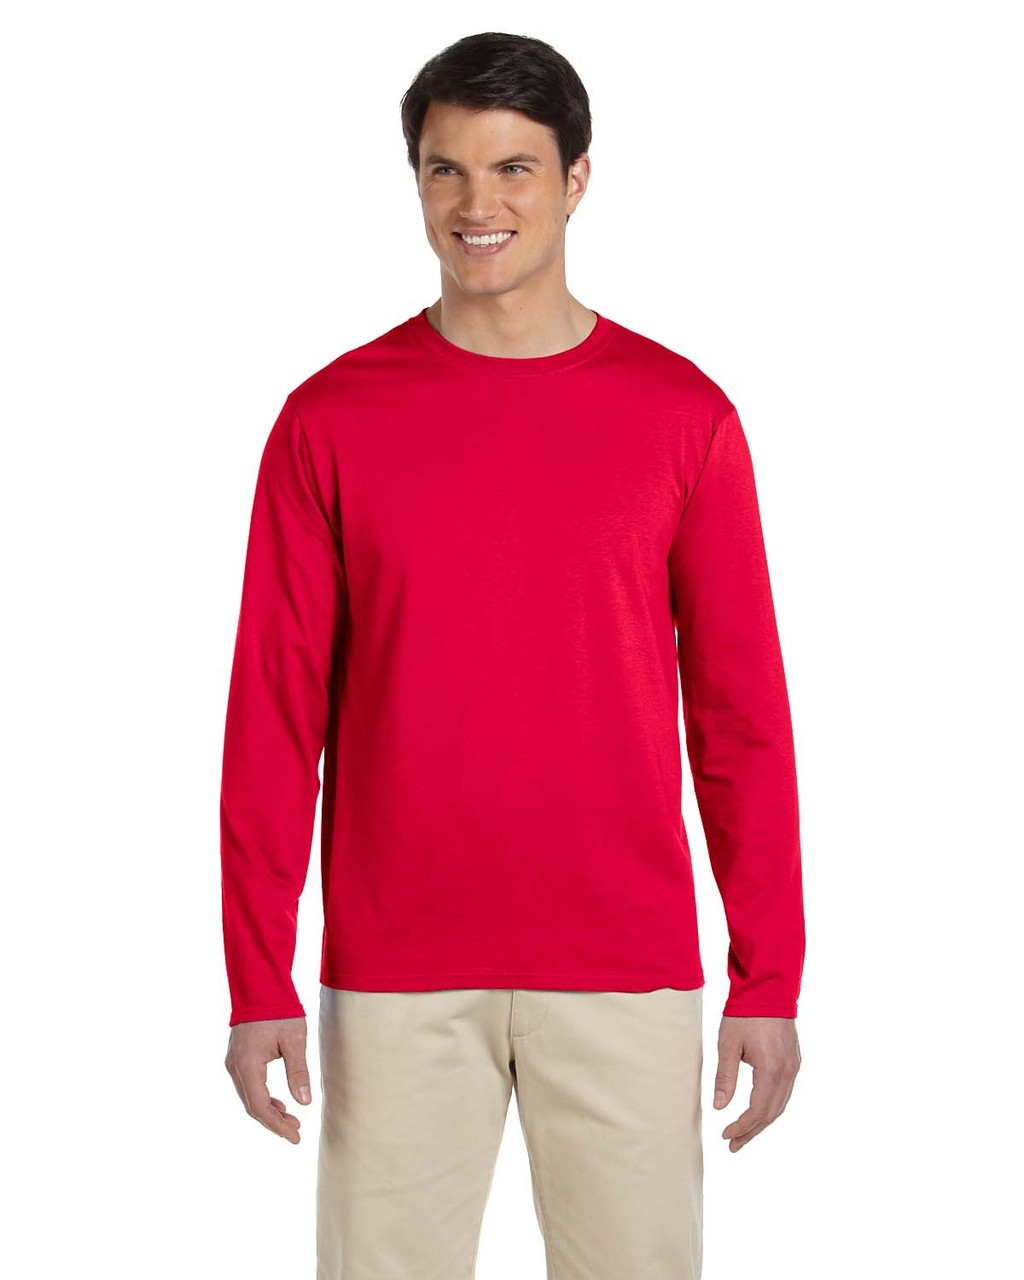 Cherry Red - G644 SoftStyle Long Sleeve T-Shirt | Blankclothing.ca